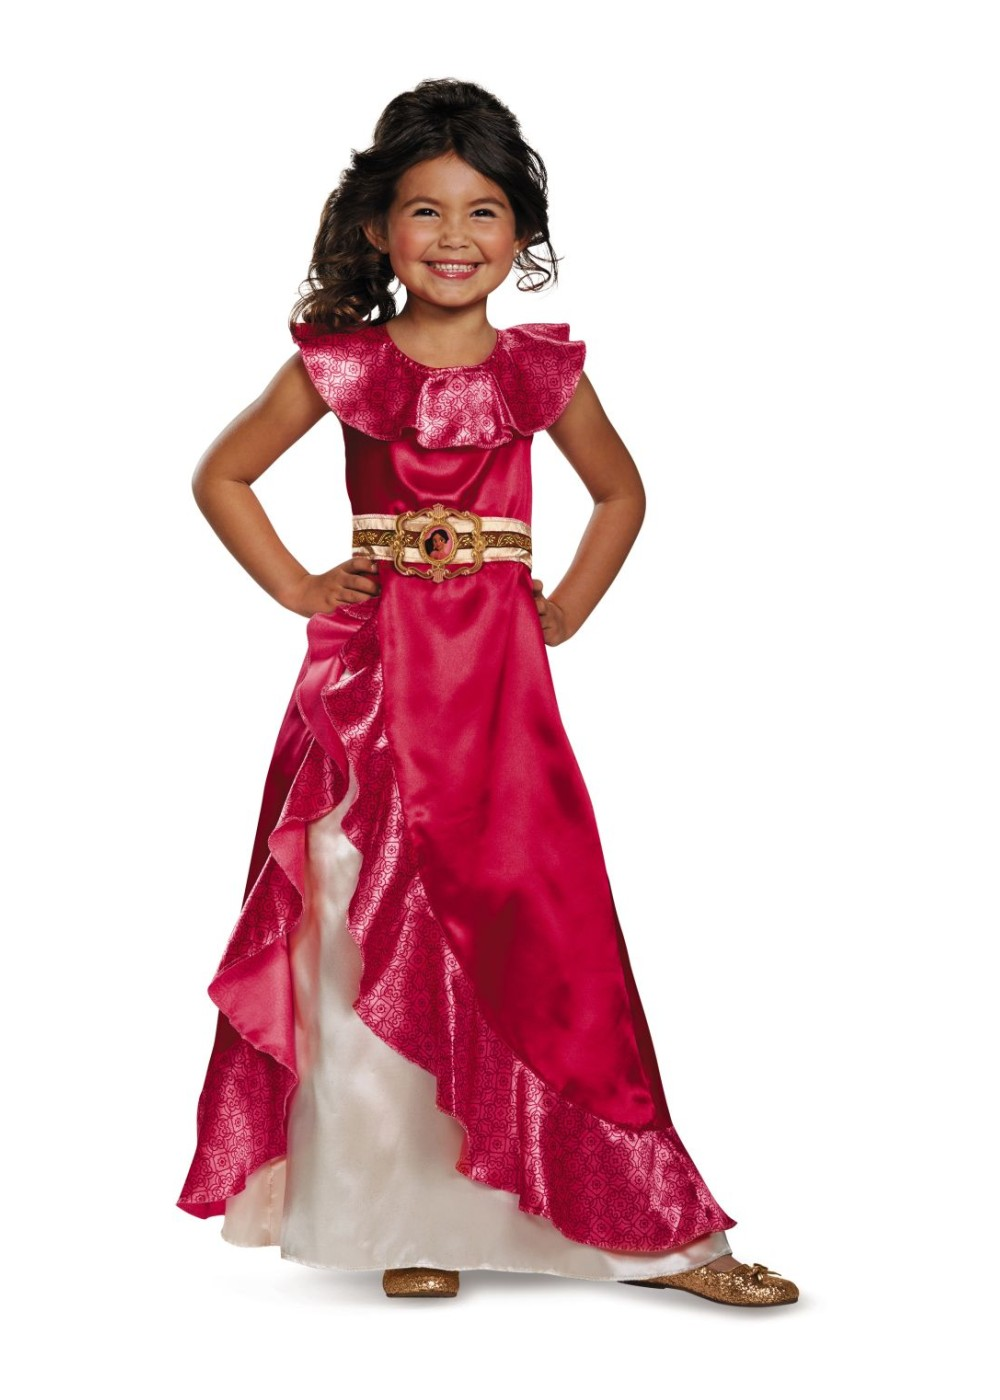 Kids Elena Of Avalor Adventure Dress Girl Disney Costume